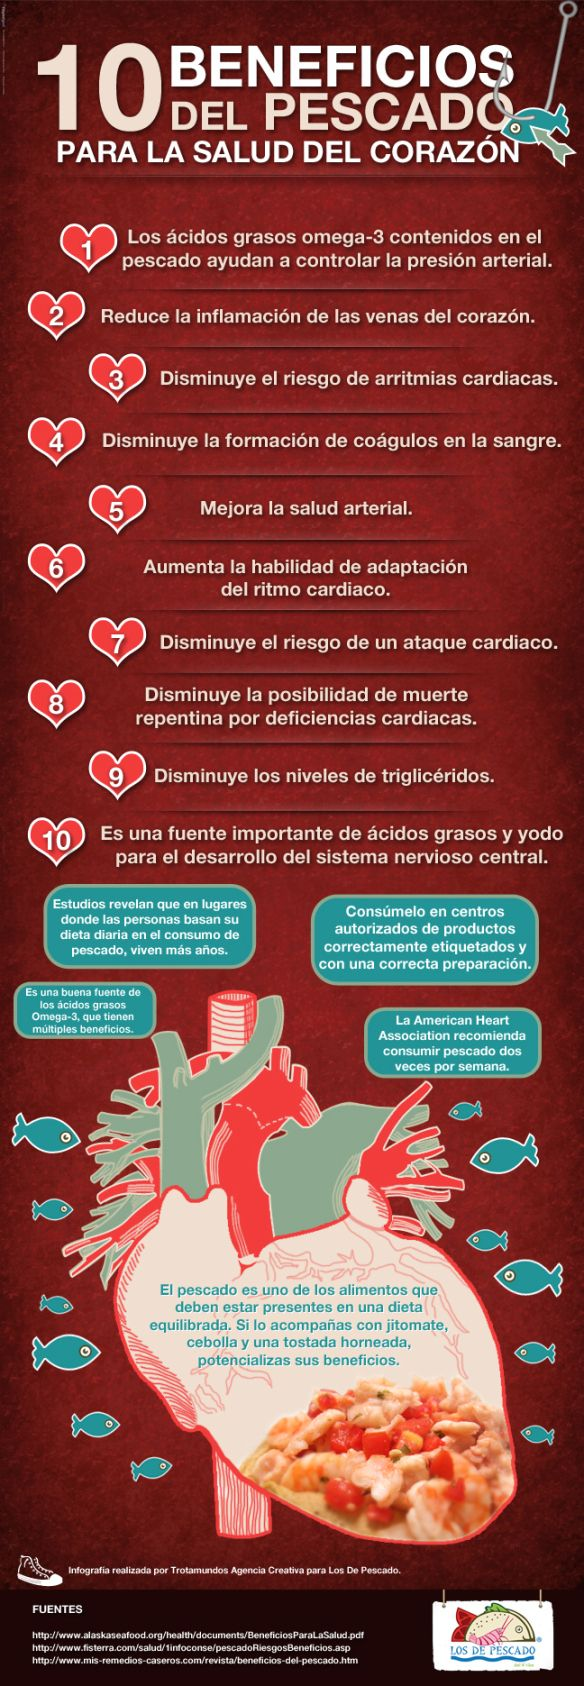 159 best Infografías images on Pinterest | Health tips, Fibromyalgia ...